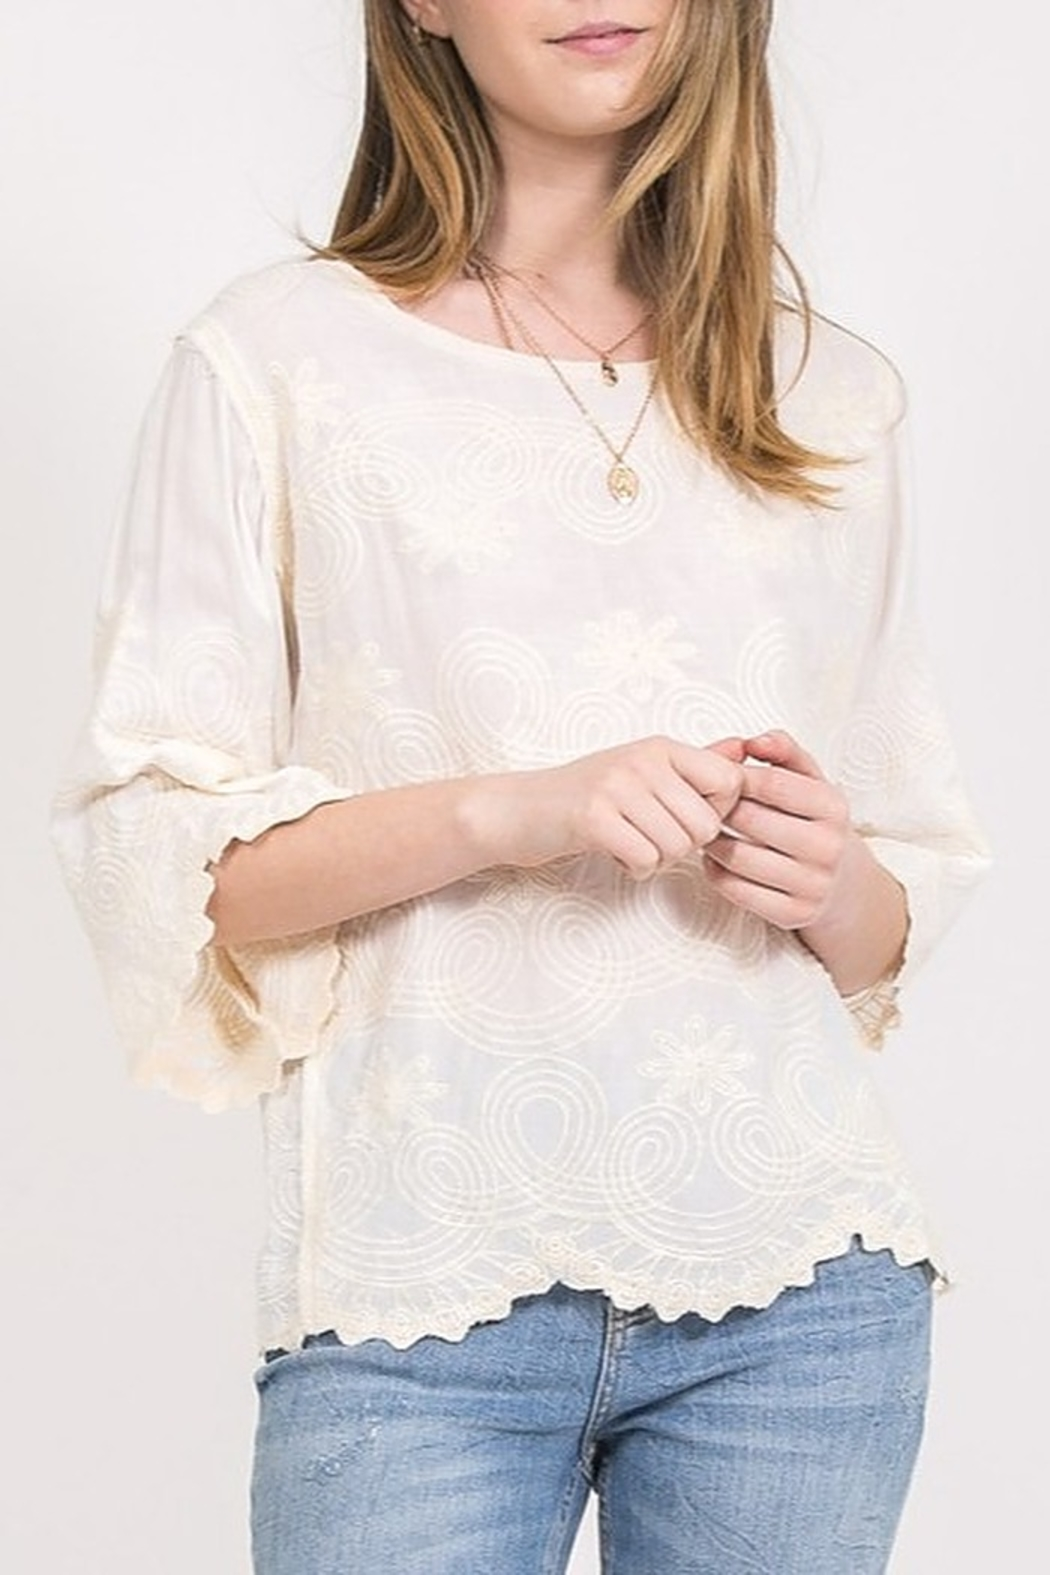 Very J Embroidered Lace Top - Main Image